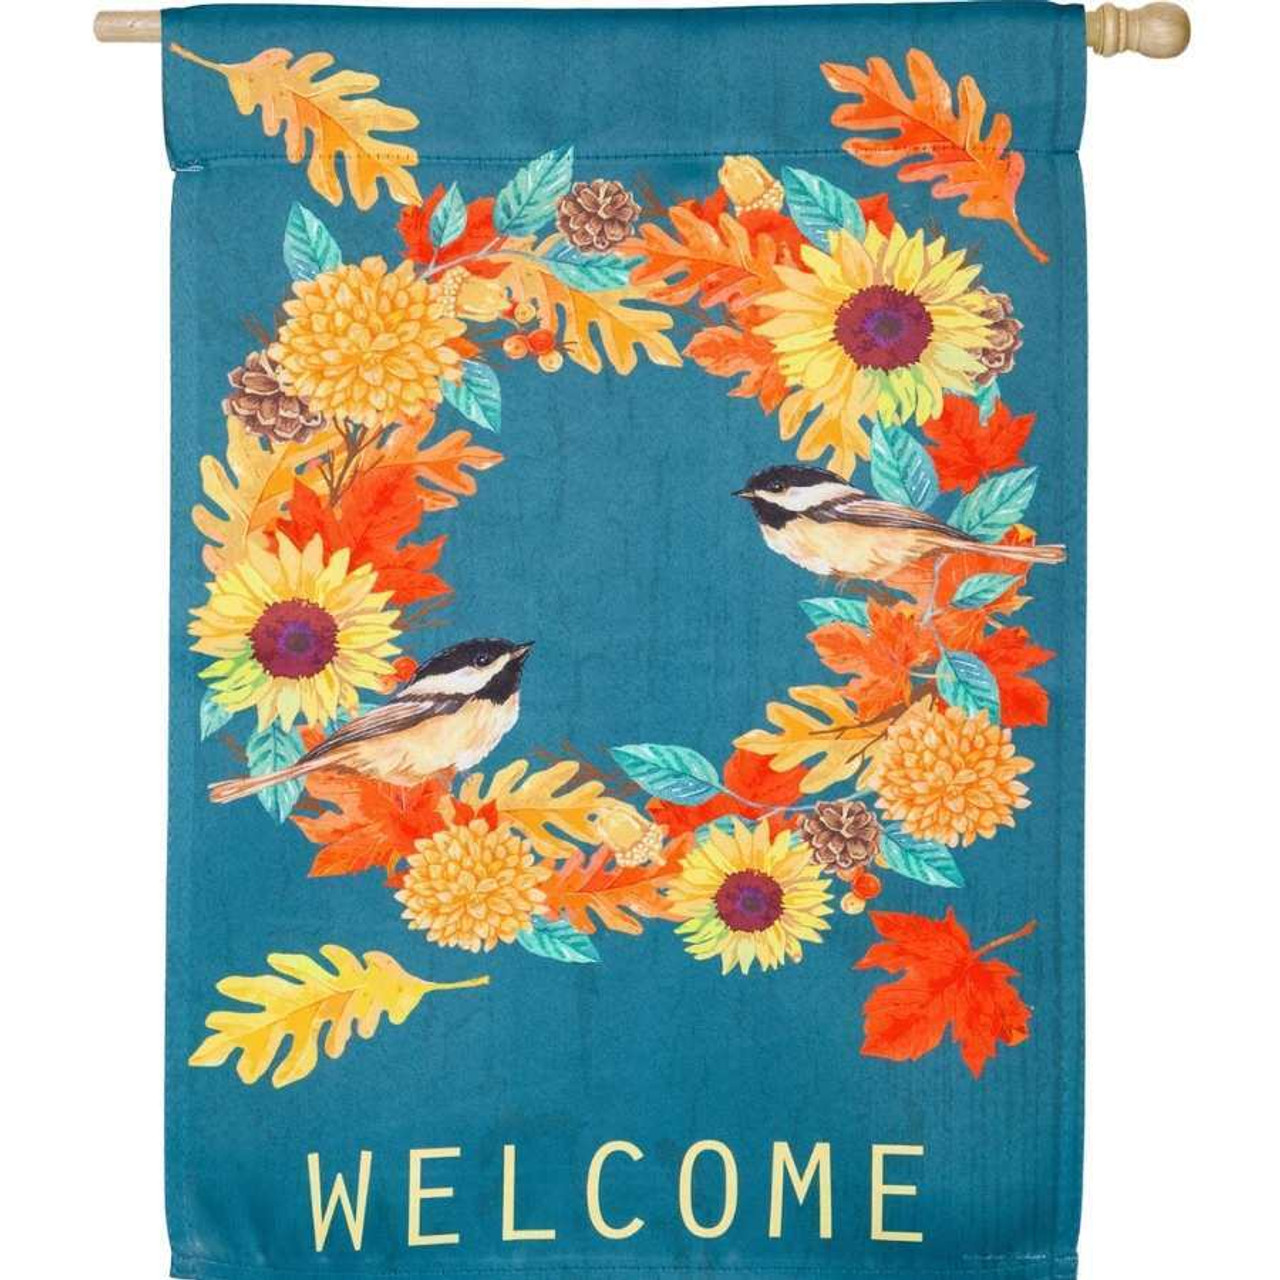 """A turquoise flag with a fall-colored wreath in the middle made up of leaves, sunflowers, and chickadees. The word """"Welcome"""" is written on the bottom."""